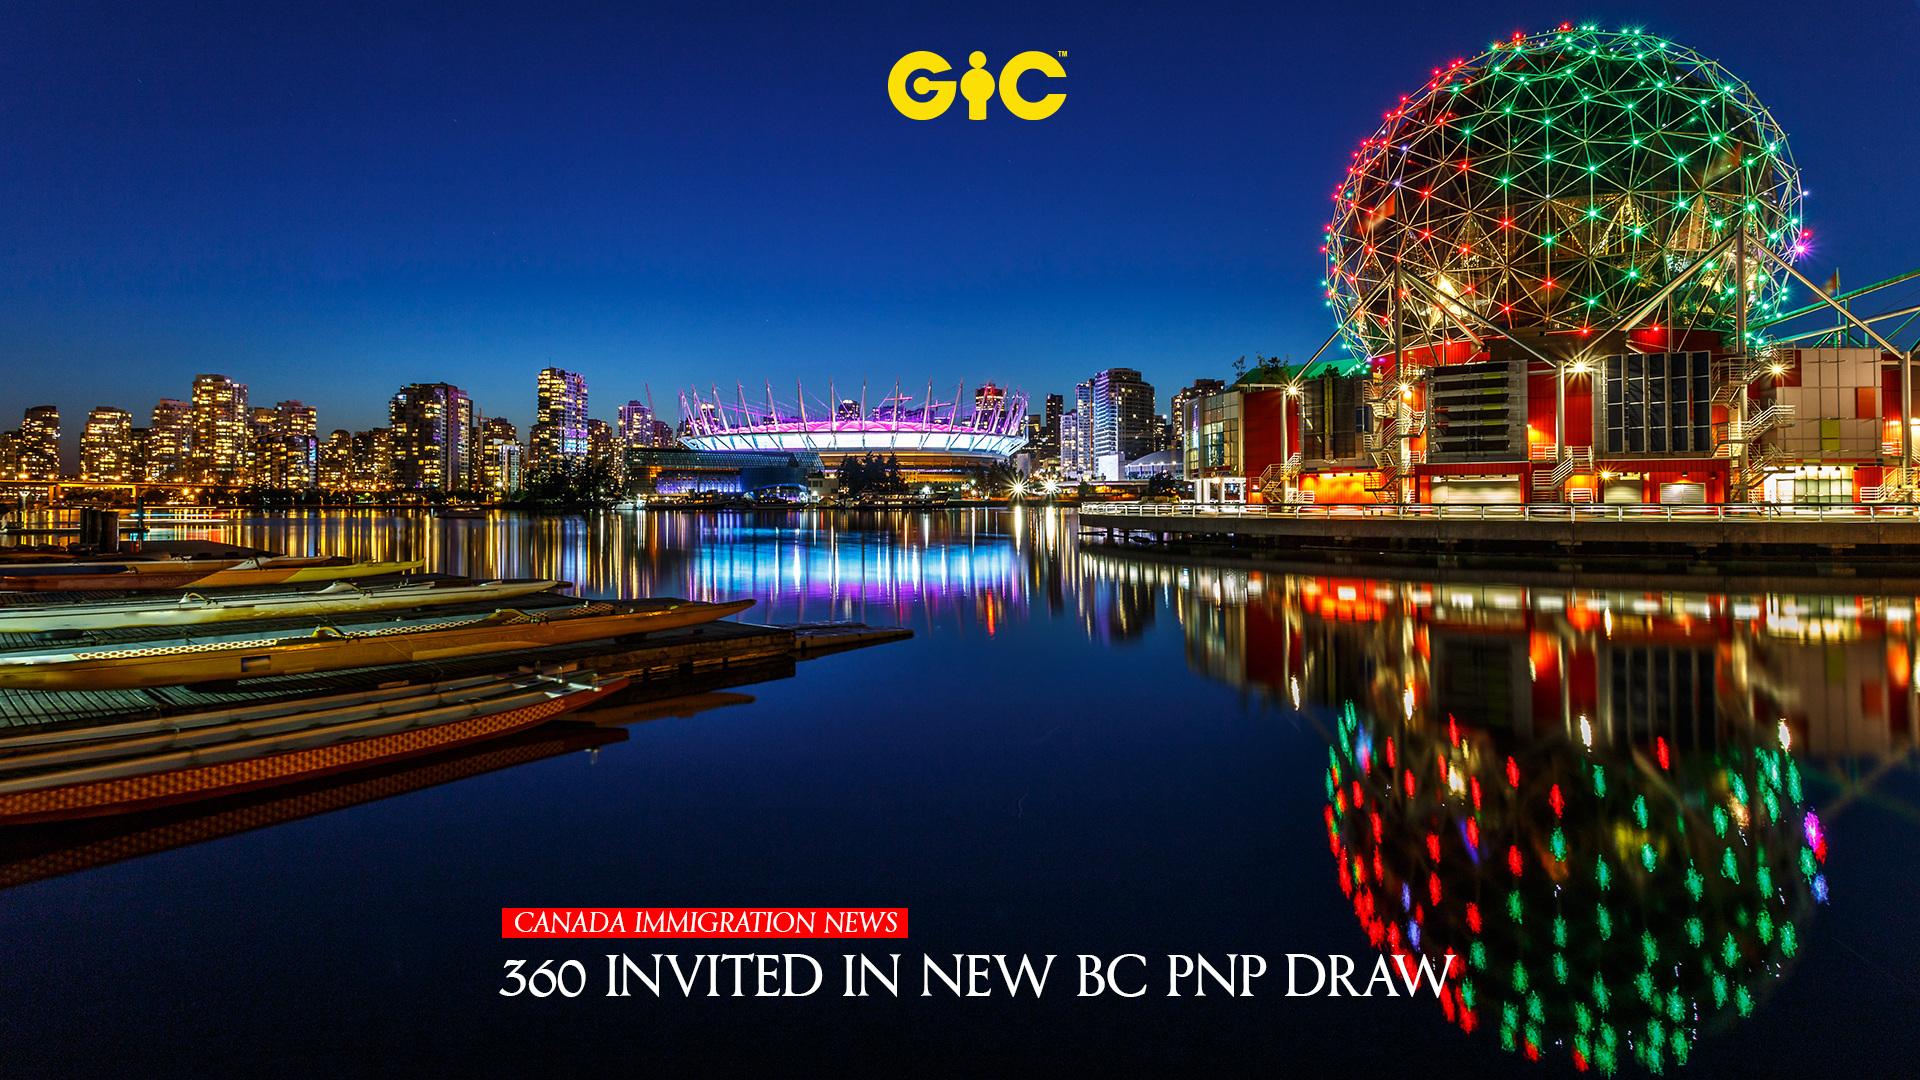 360 invited in new BC PNP draw